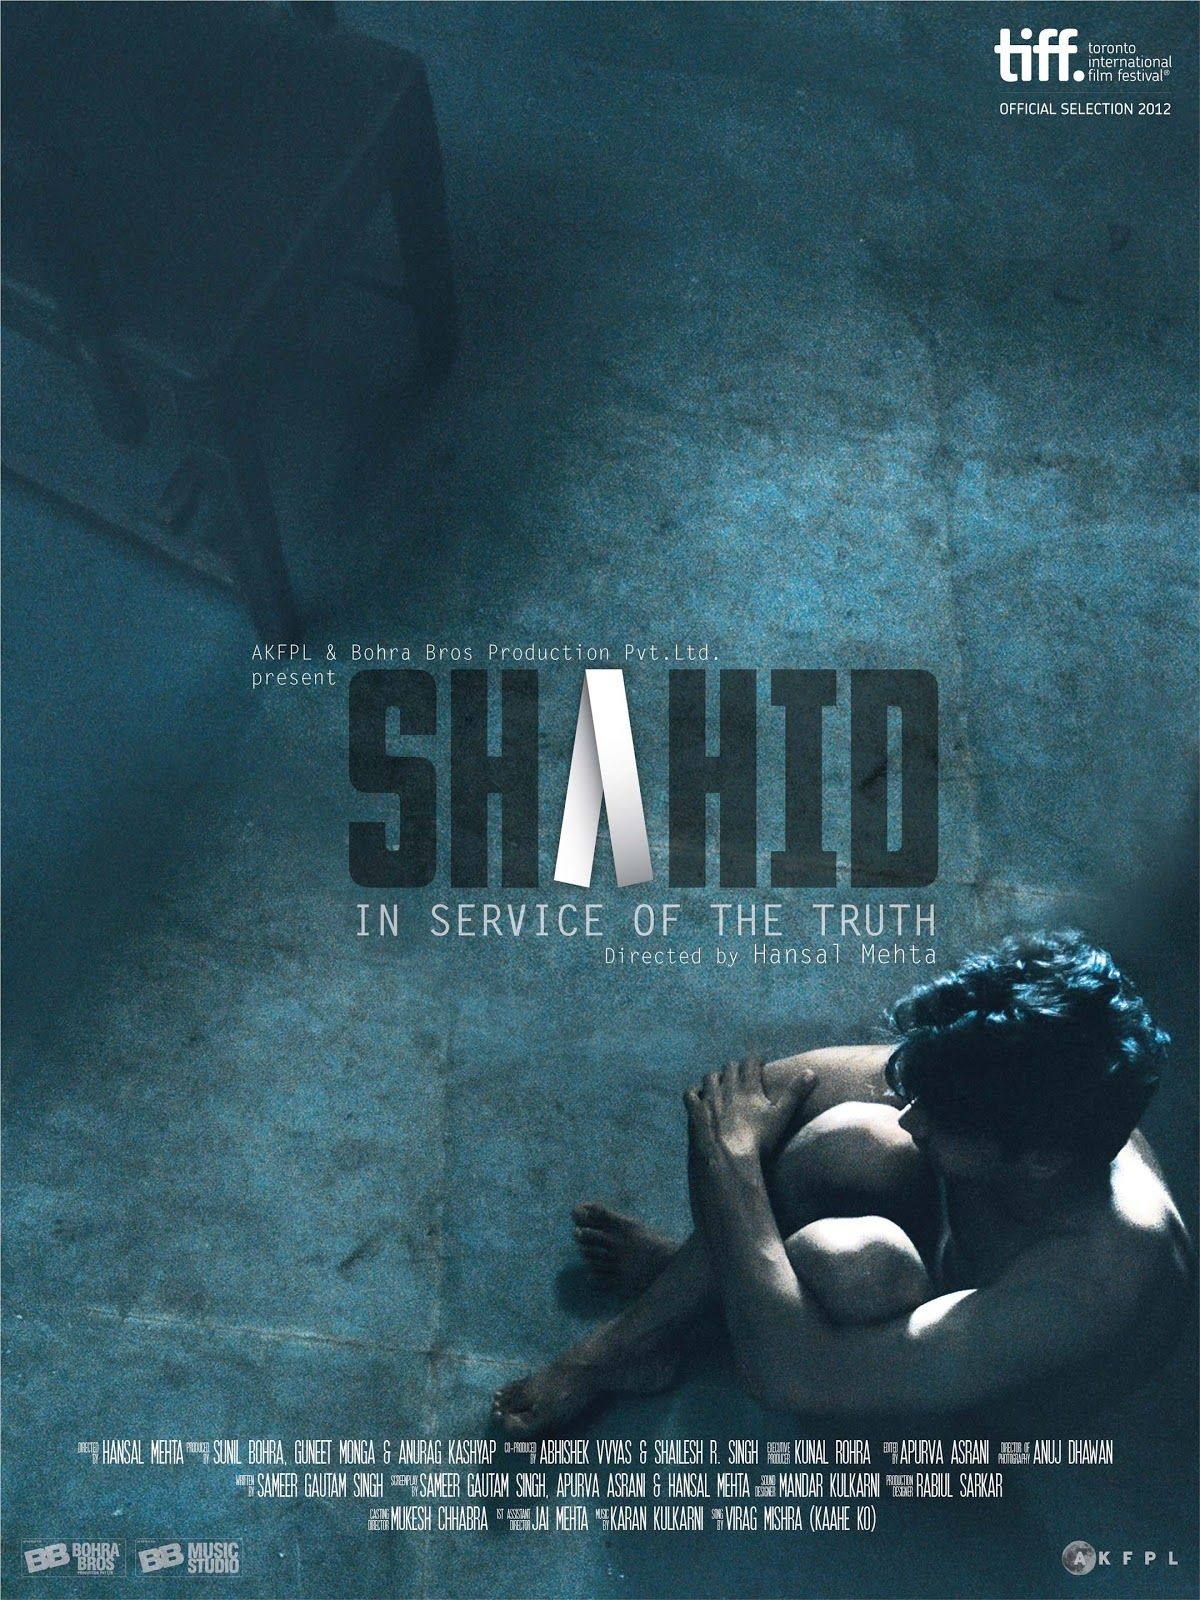 Shahid - Hindi  | Movies with meaning | Hindi movies online